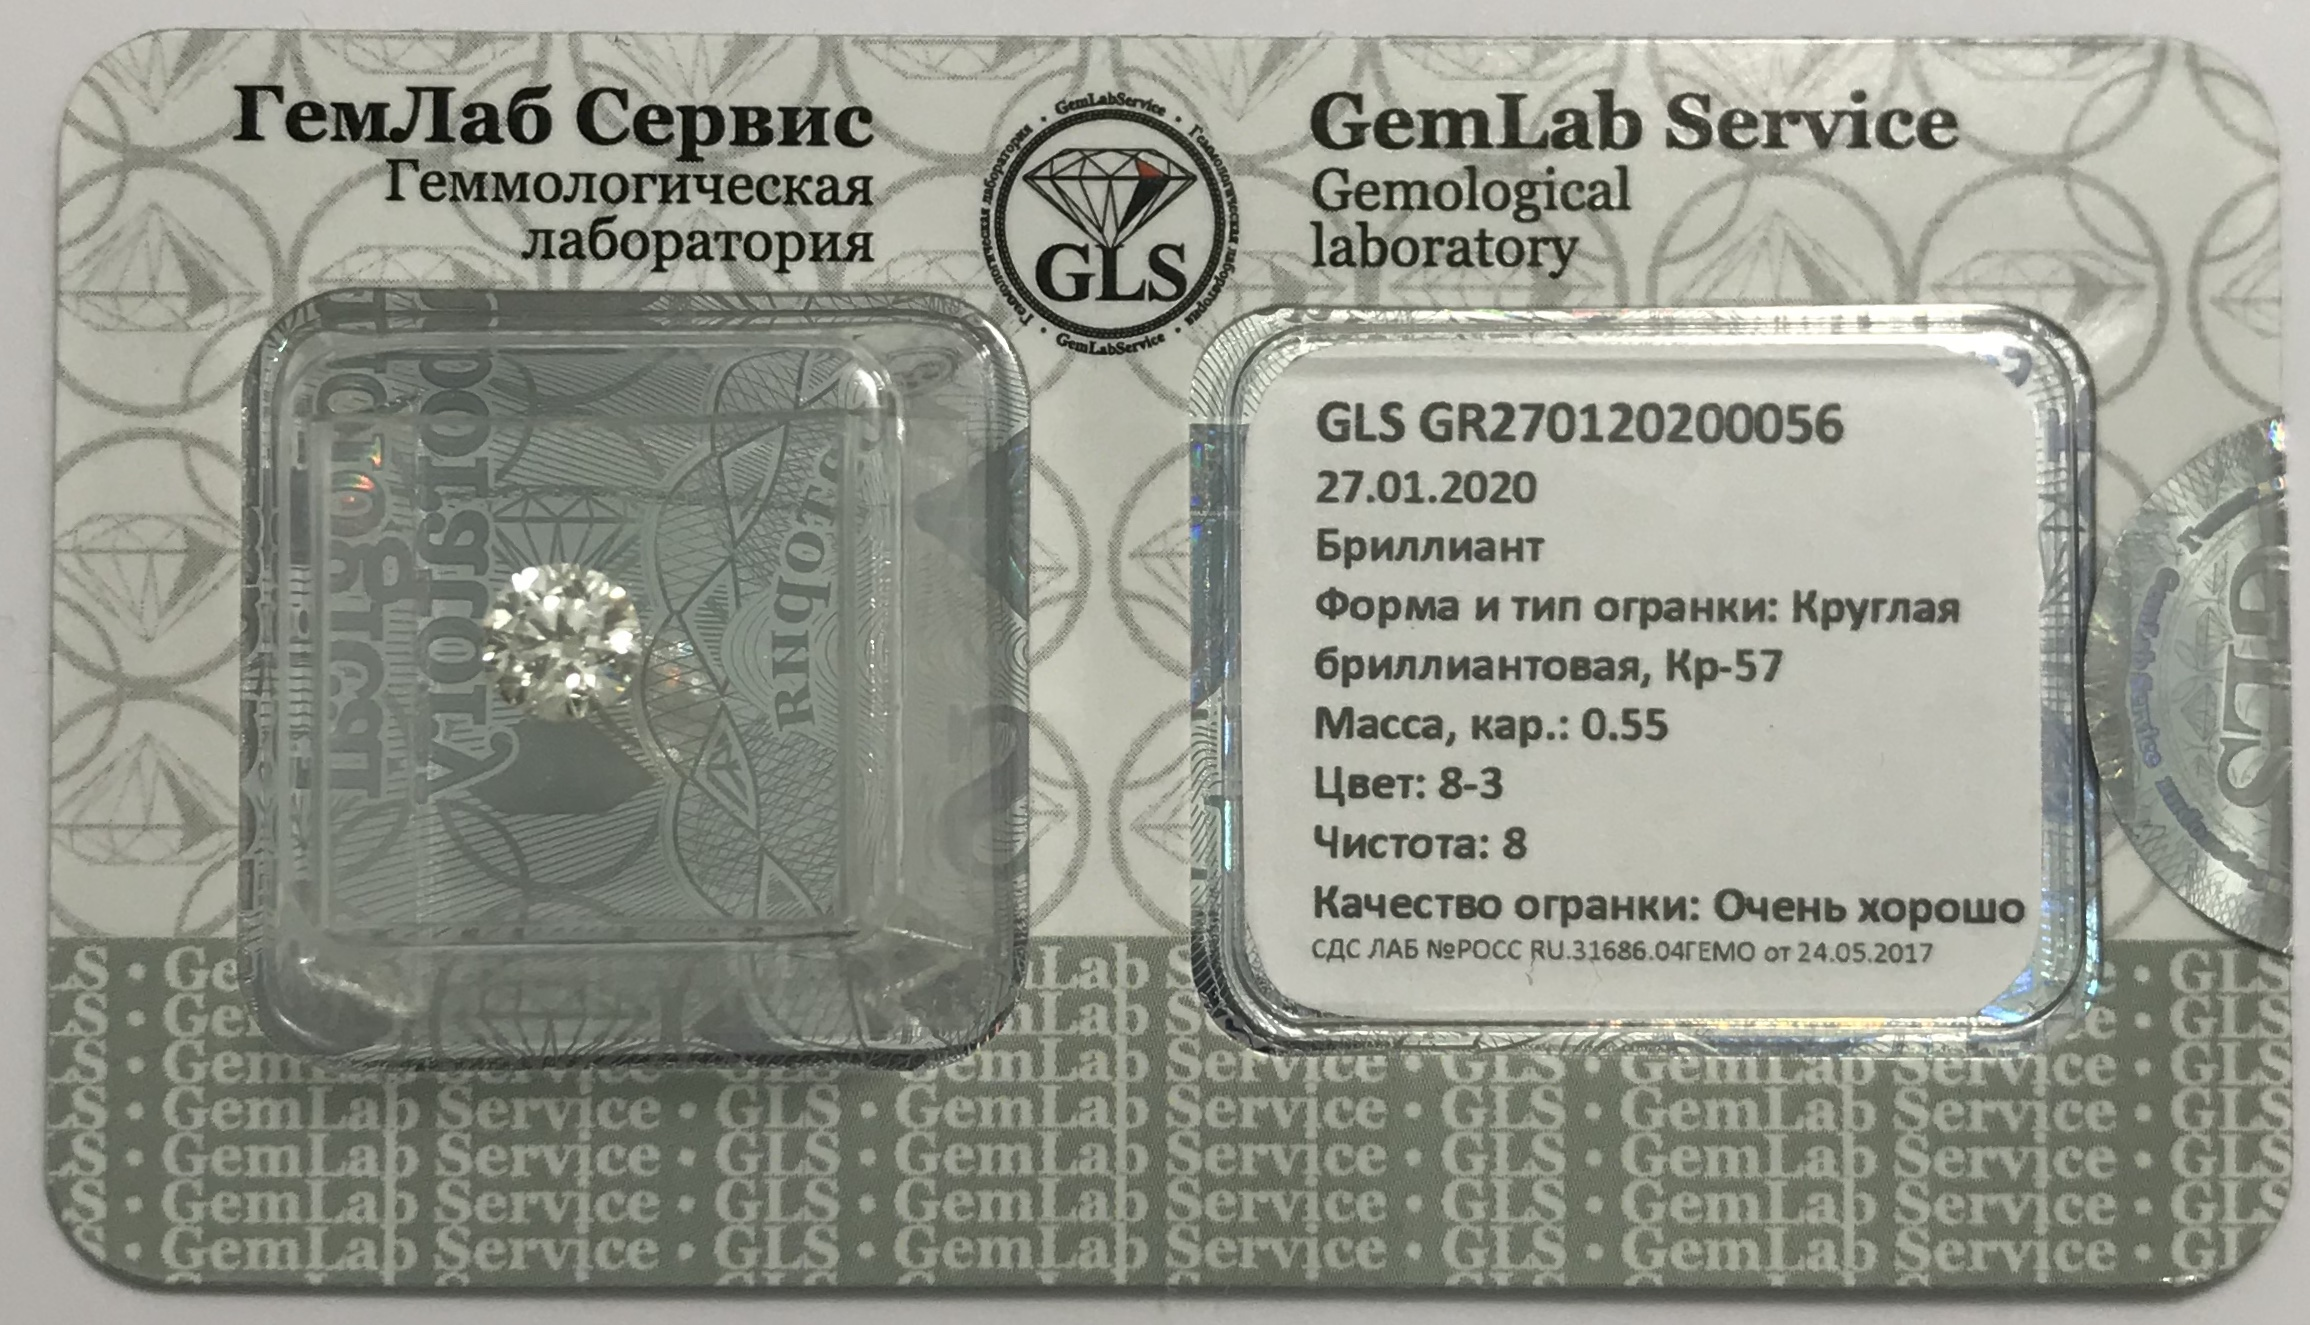 картинка Кр57 0.55ct. 83/5 GLS GR270120200057 от severbrilliant.ru